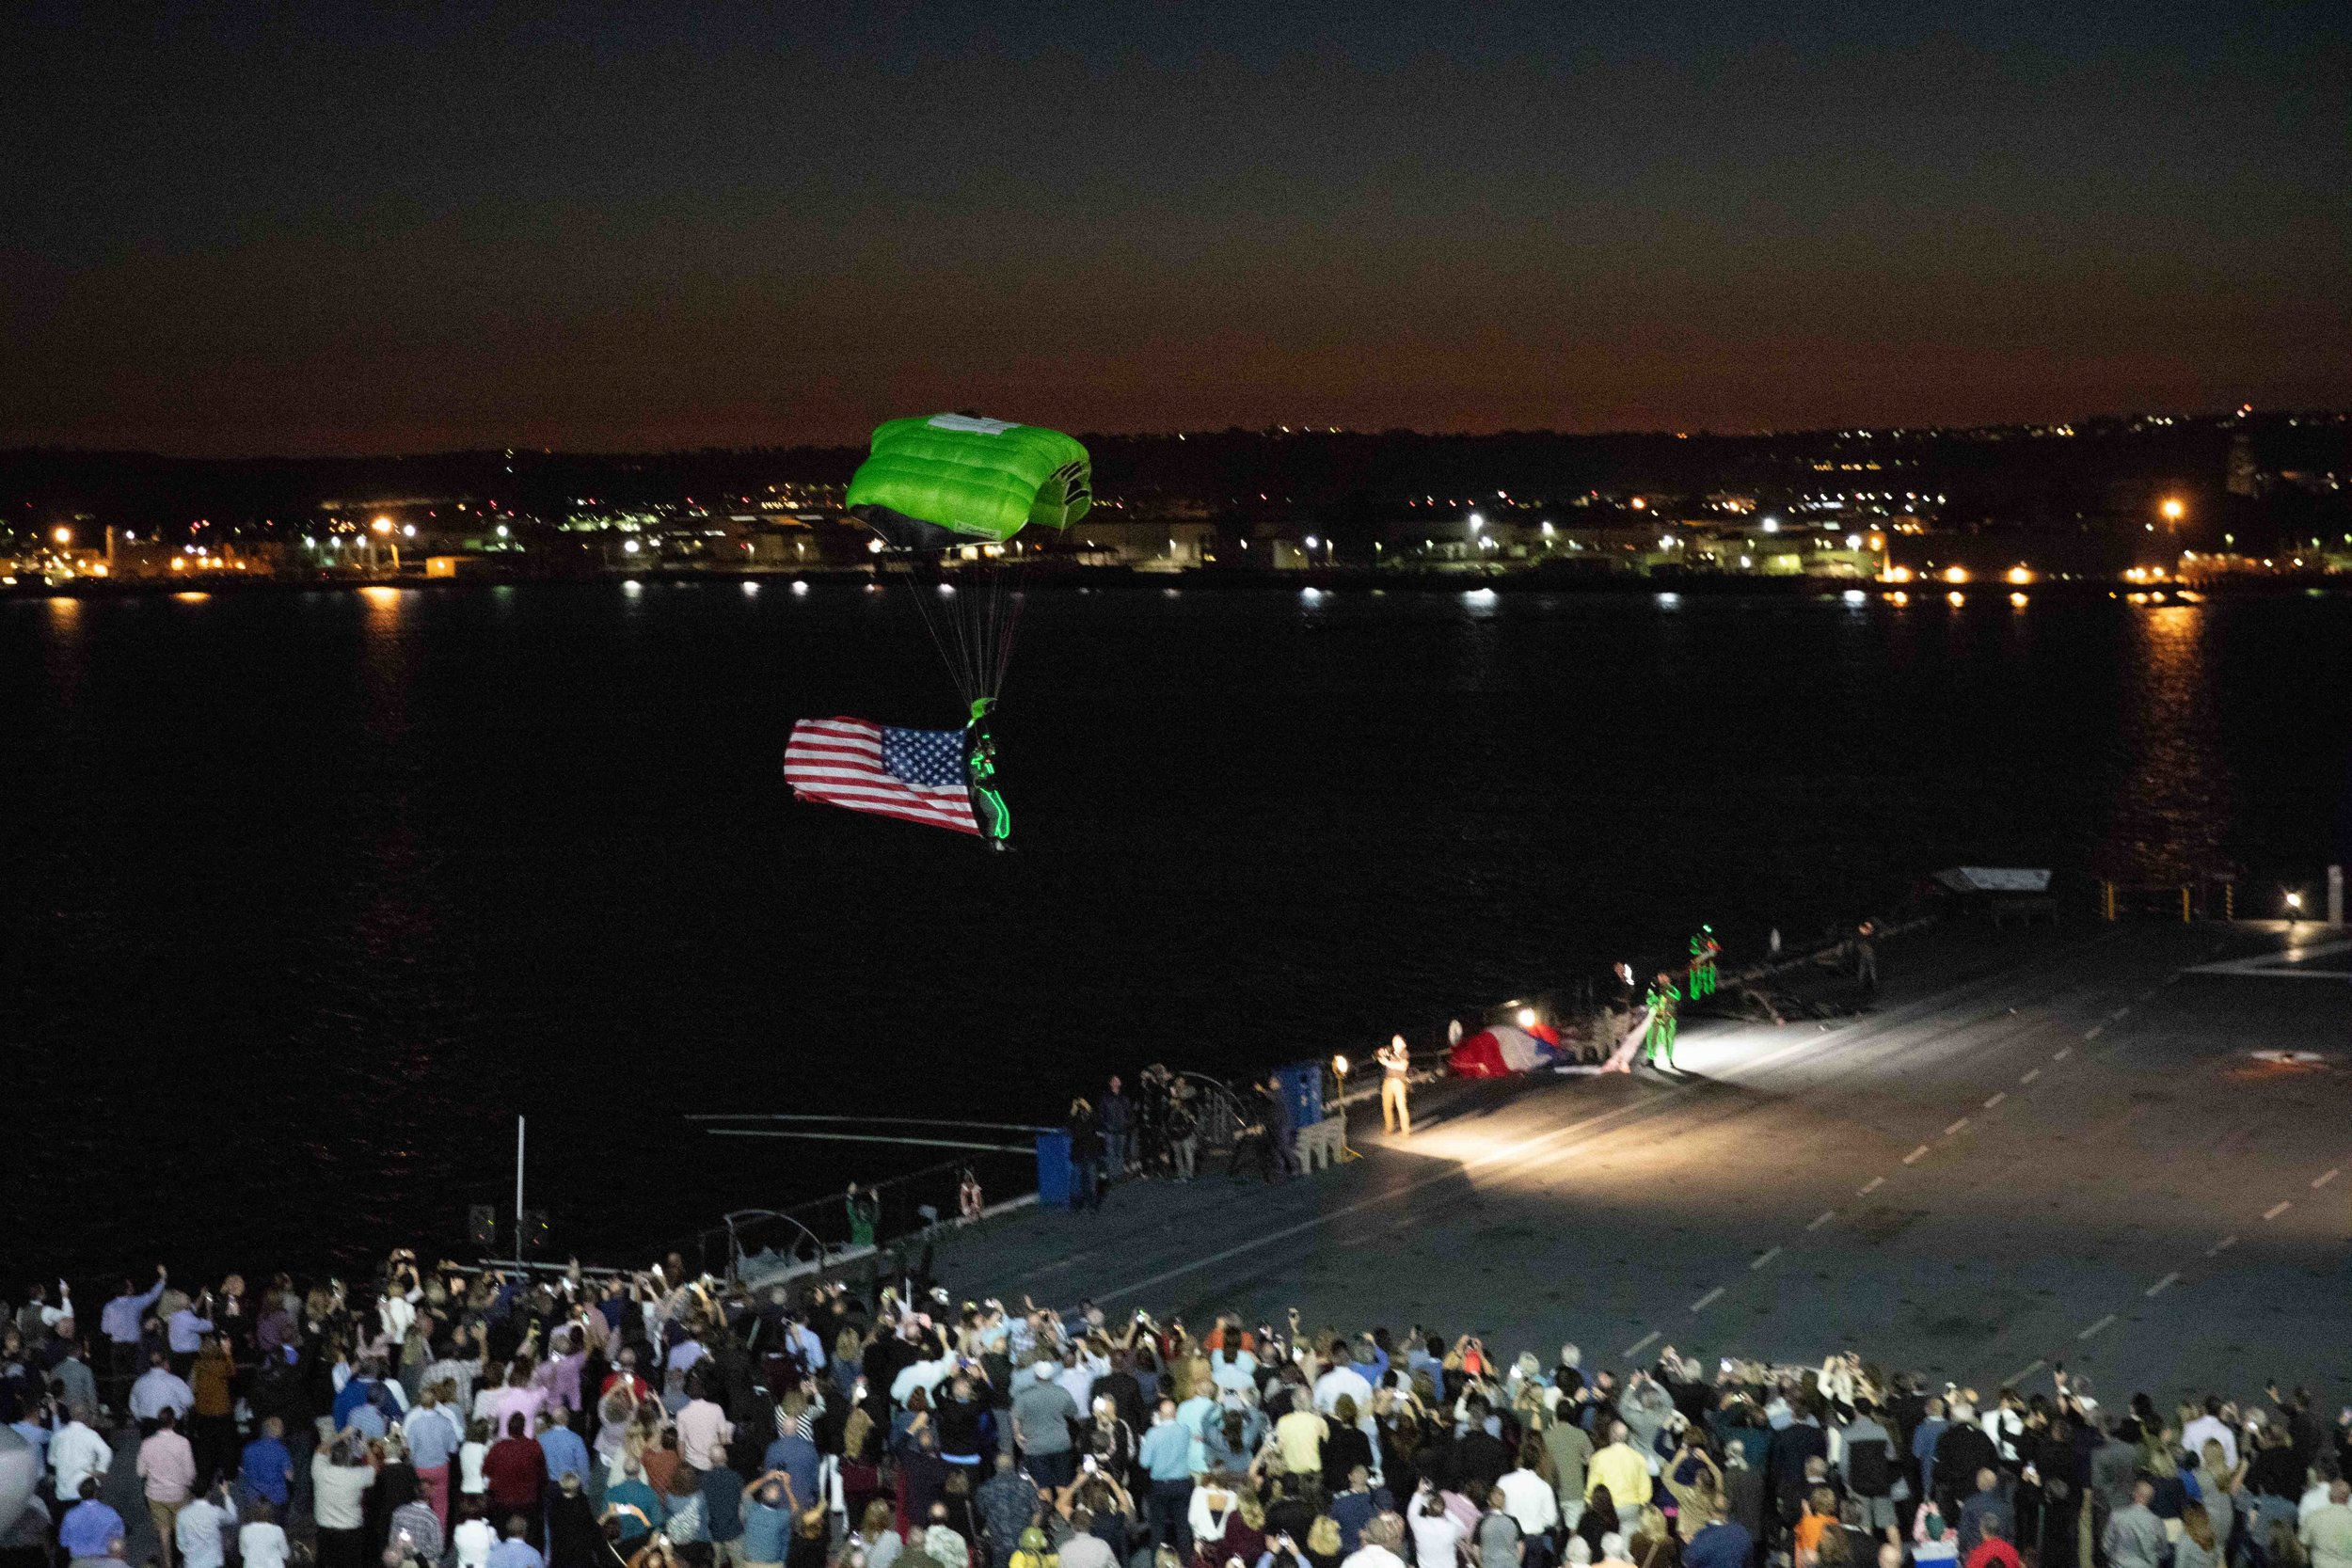 Skydivers entertained the attendees by parachuting onto the aircraft carrier Midway at the meet and greet the first night of the 75th annual SMACNA convention.